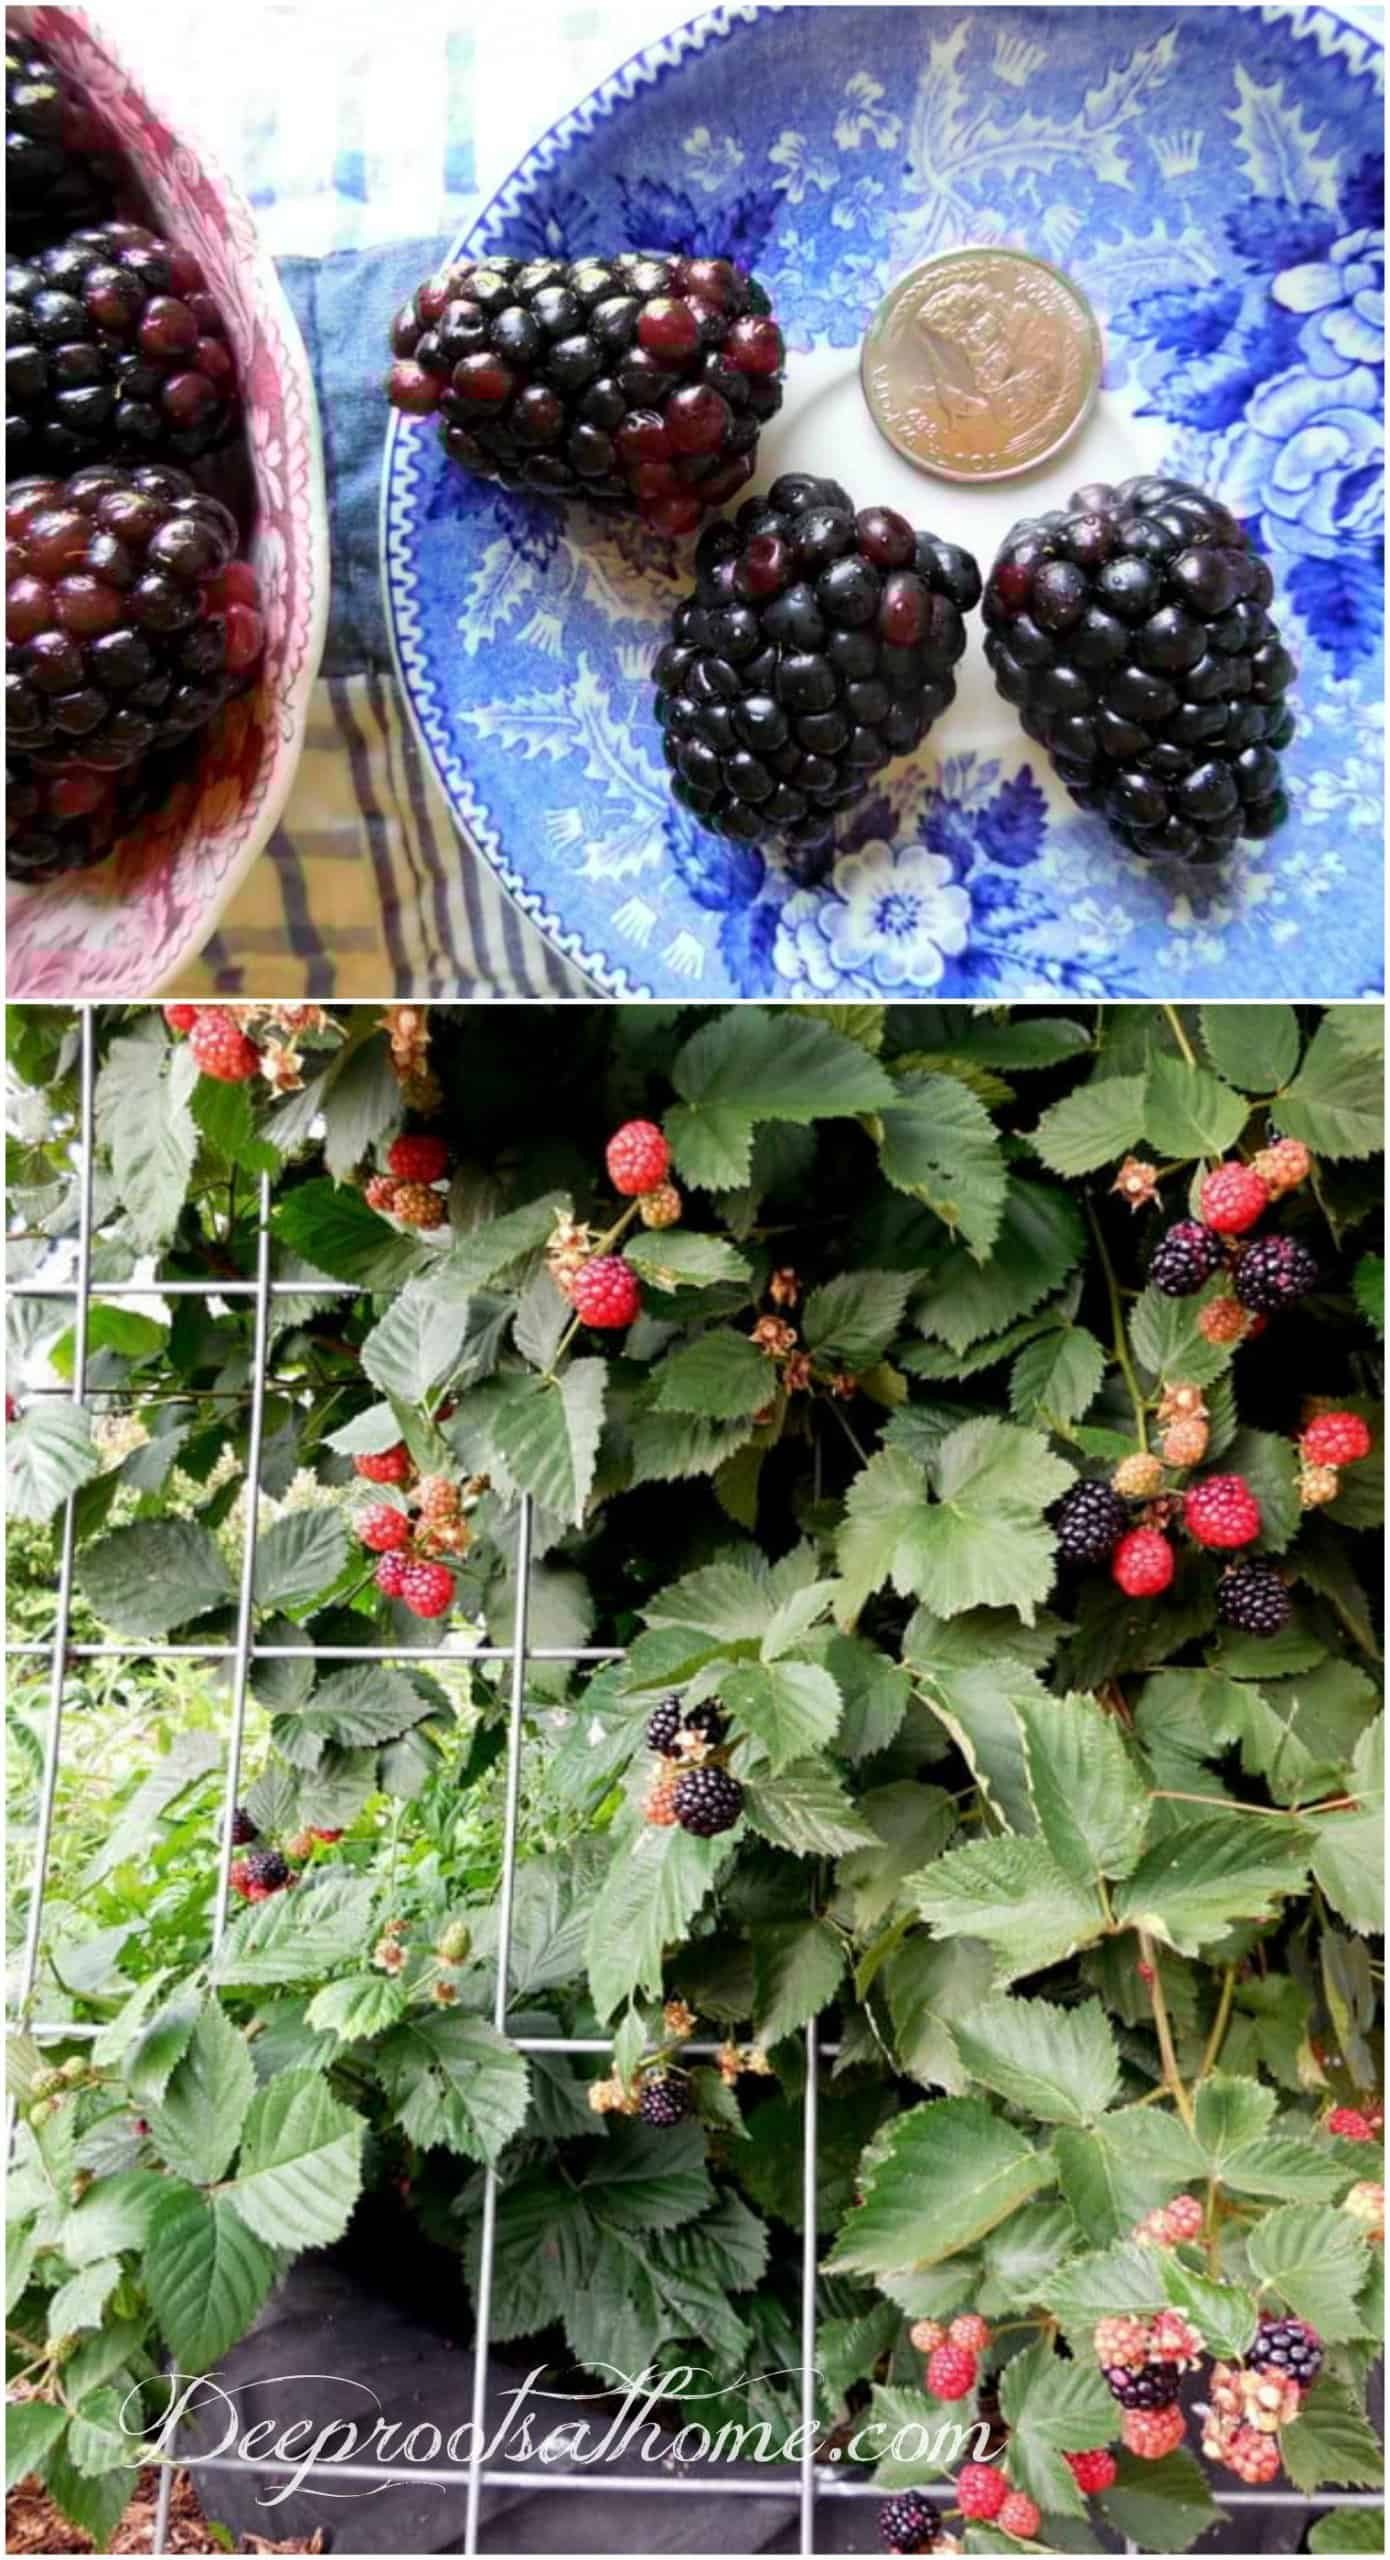 Ode To Summer, A Visual Journal, Arapaho blackberries, grown in a tire and over a cattle panel